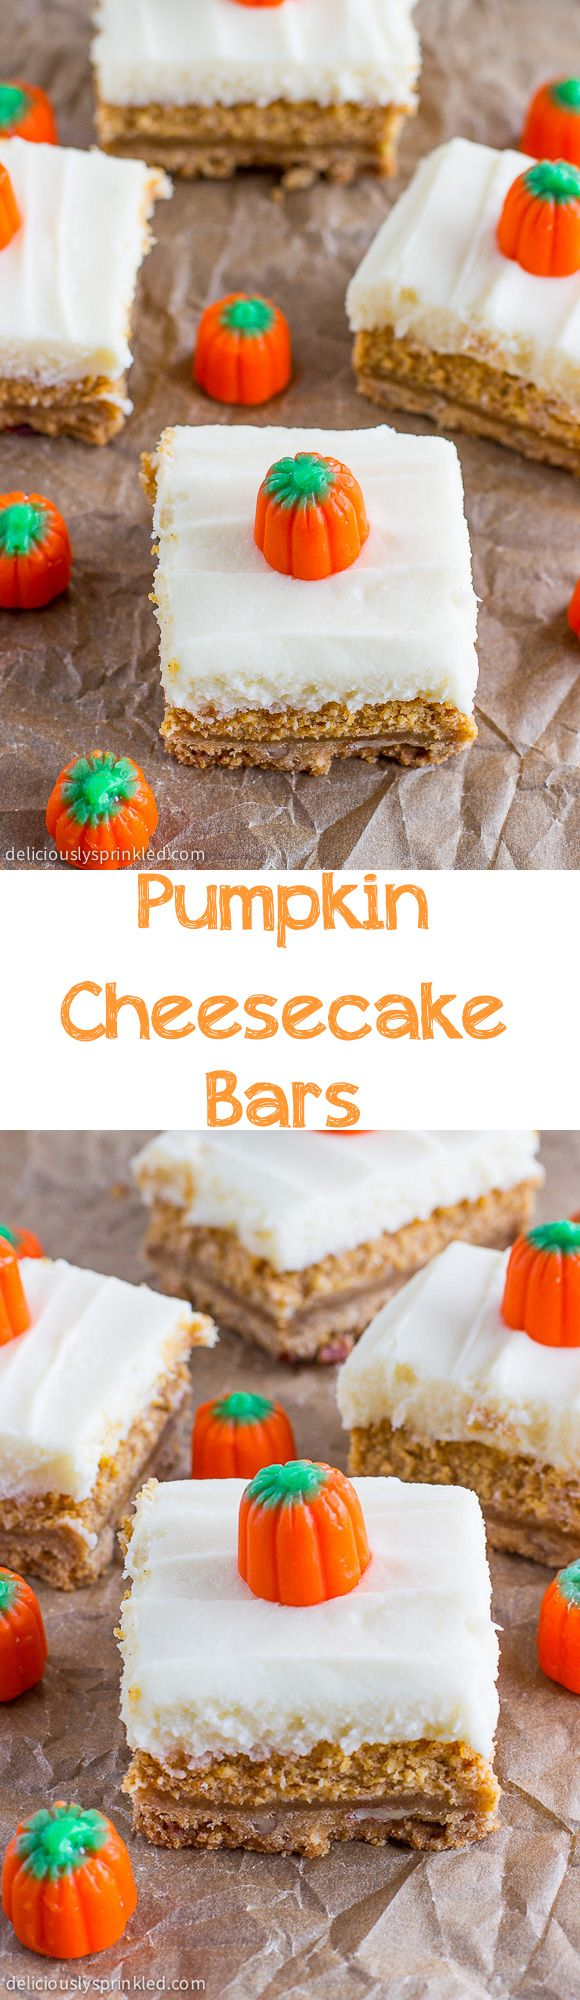 Easy Pumpkin Cheesecake Bars with Cream Cheese Frosting- a favorite family recipe for Thanksgiving.